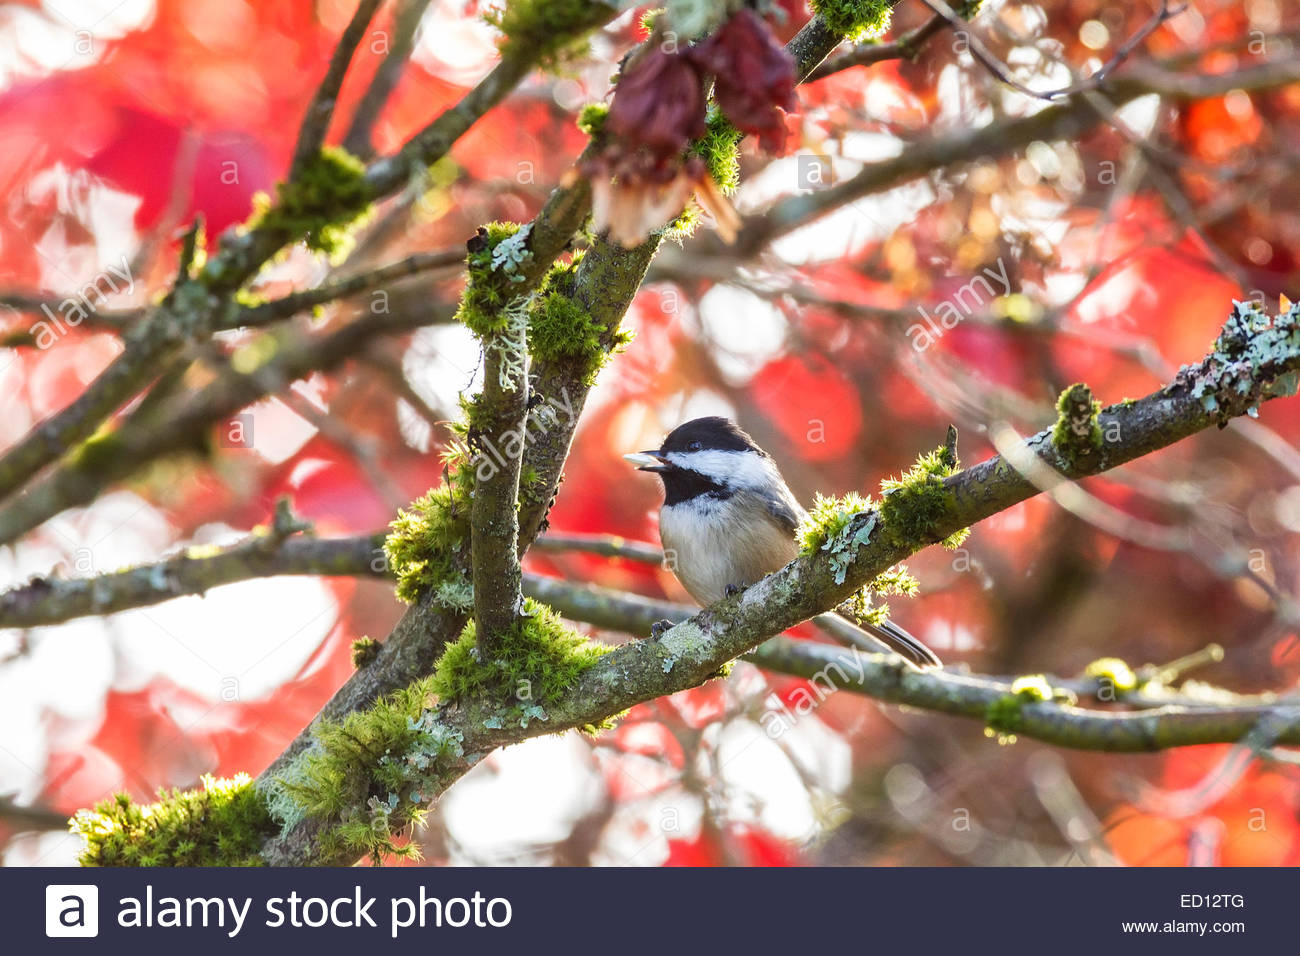 A chestnut-backed chickadee (Poecile rufescens) feeds on a seed while perched in a maple tree displaying its red - Stock Image